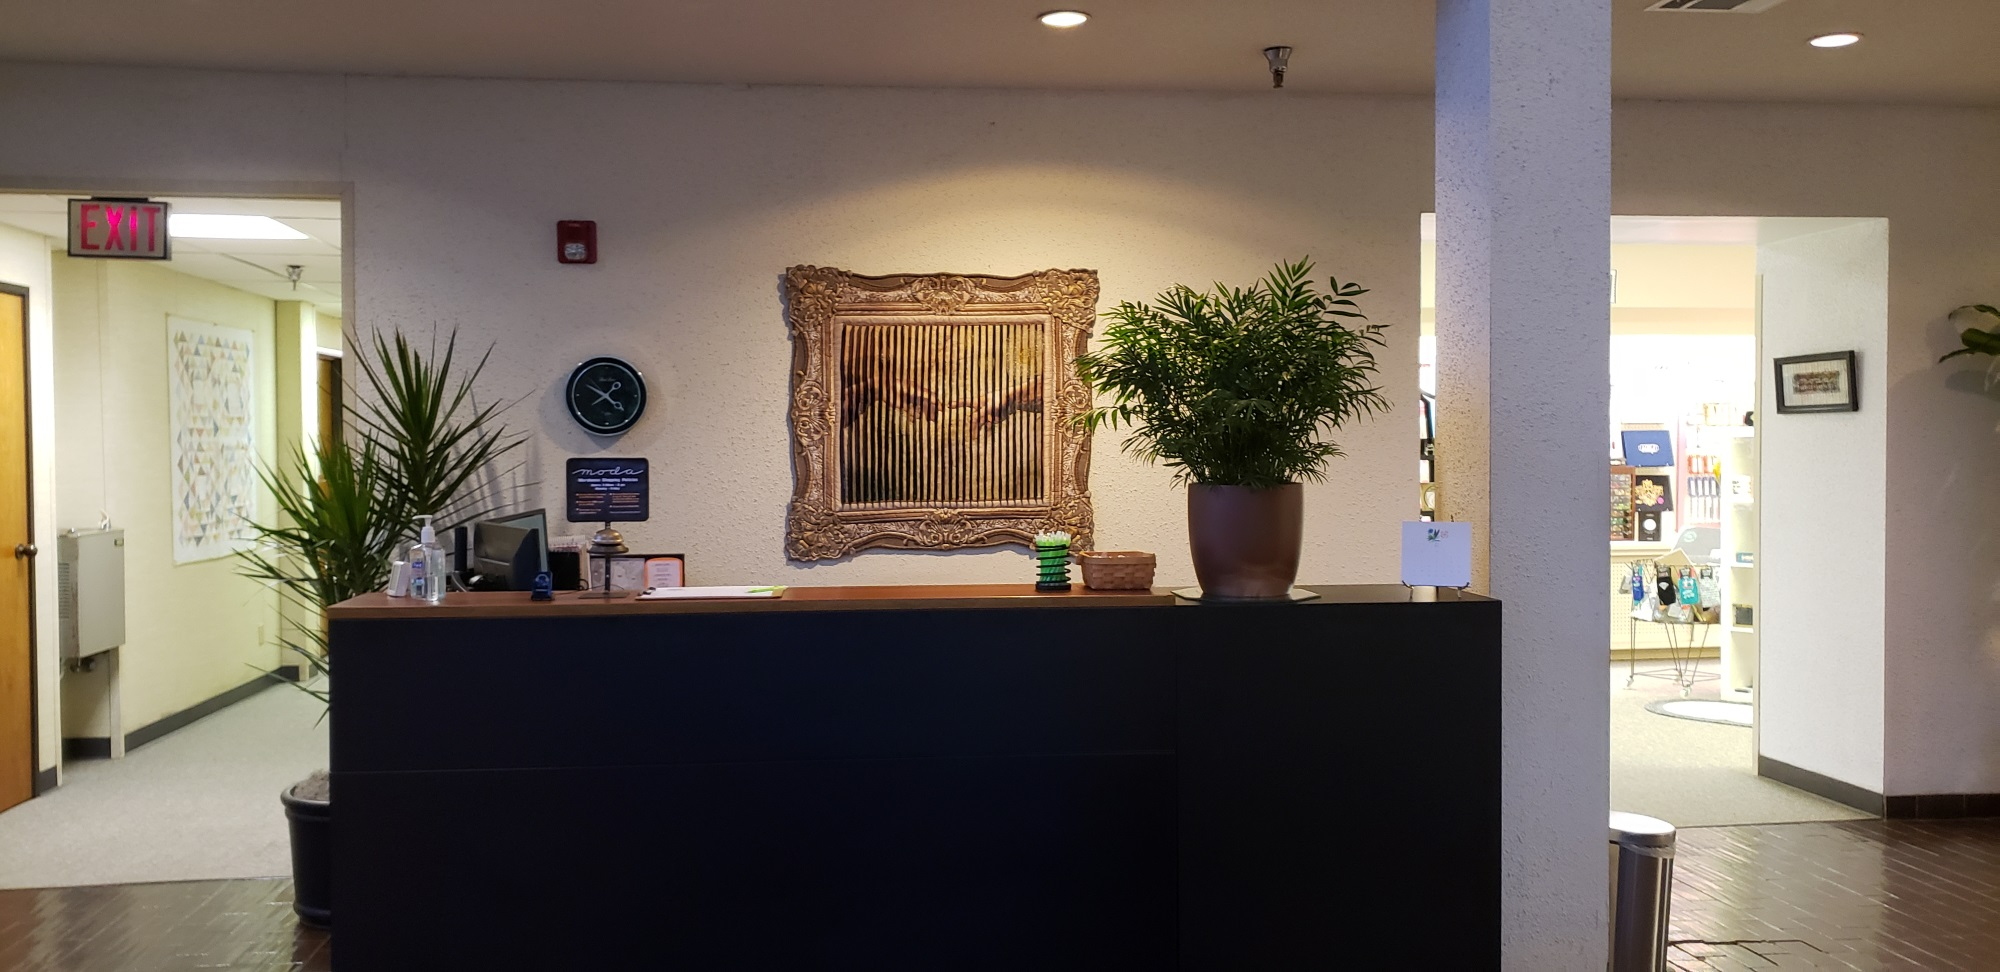 This was the lobby area and the receptionist's desk. When we first got there, no one was there!